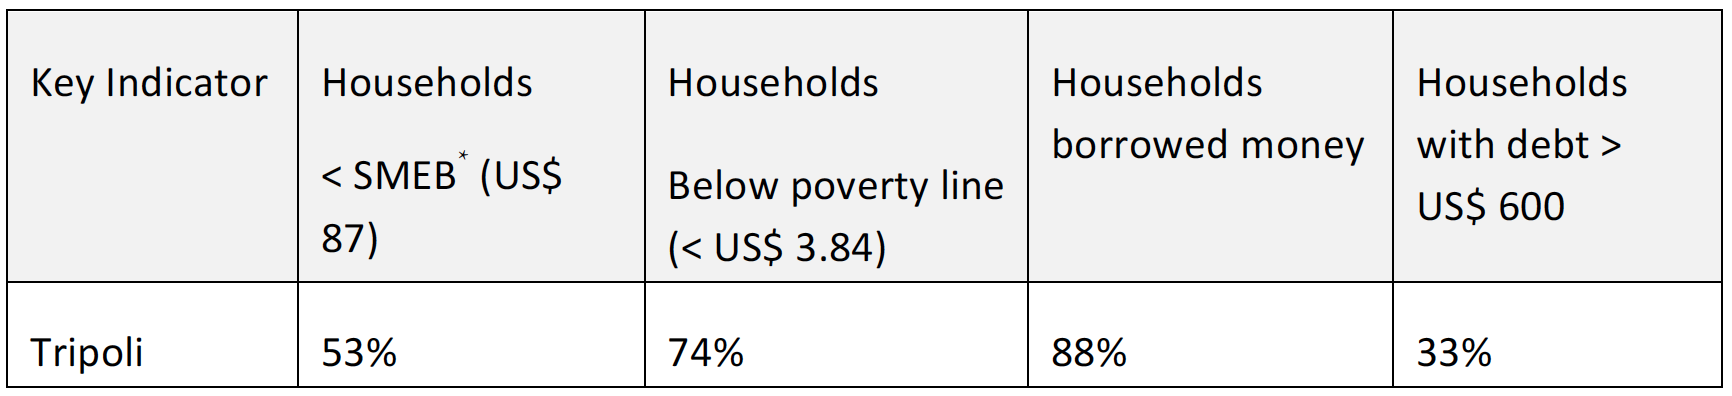 Data from UNICEF, UNHCR & WFP.  *SMEB refers to the Survival Minimum Expenditure Basket, which measures items deemed essential for household survival.